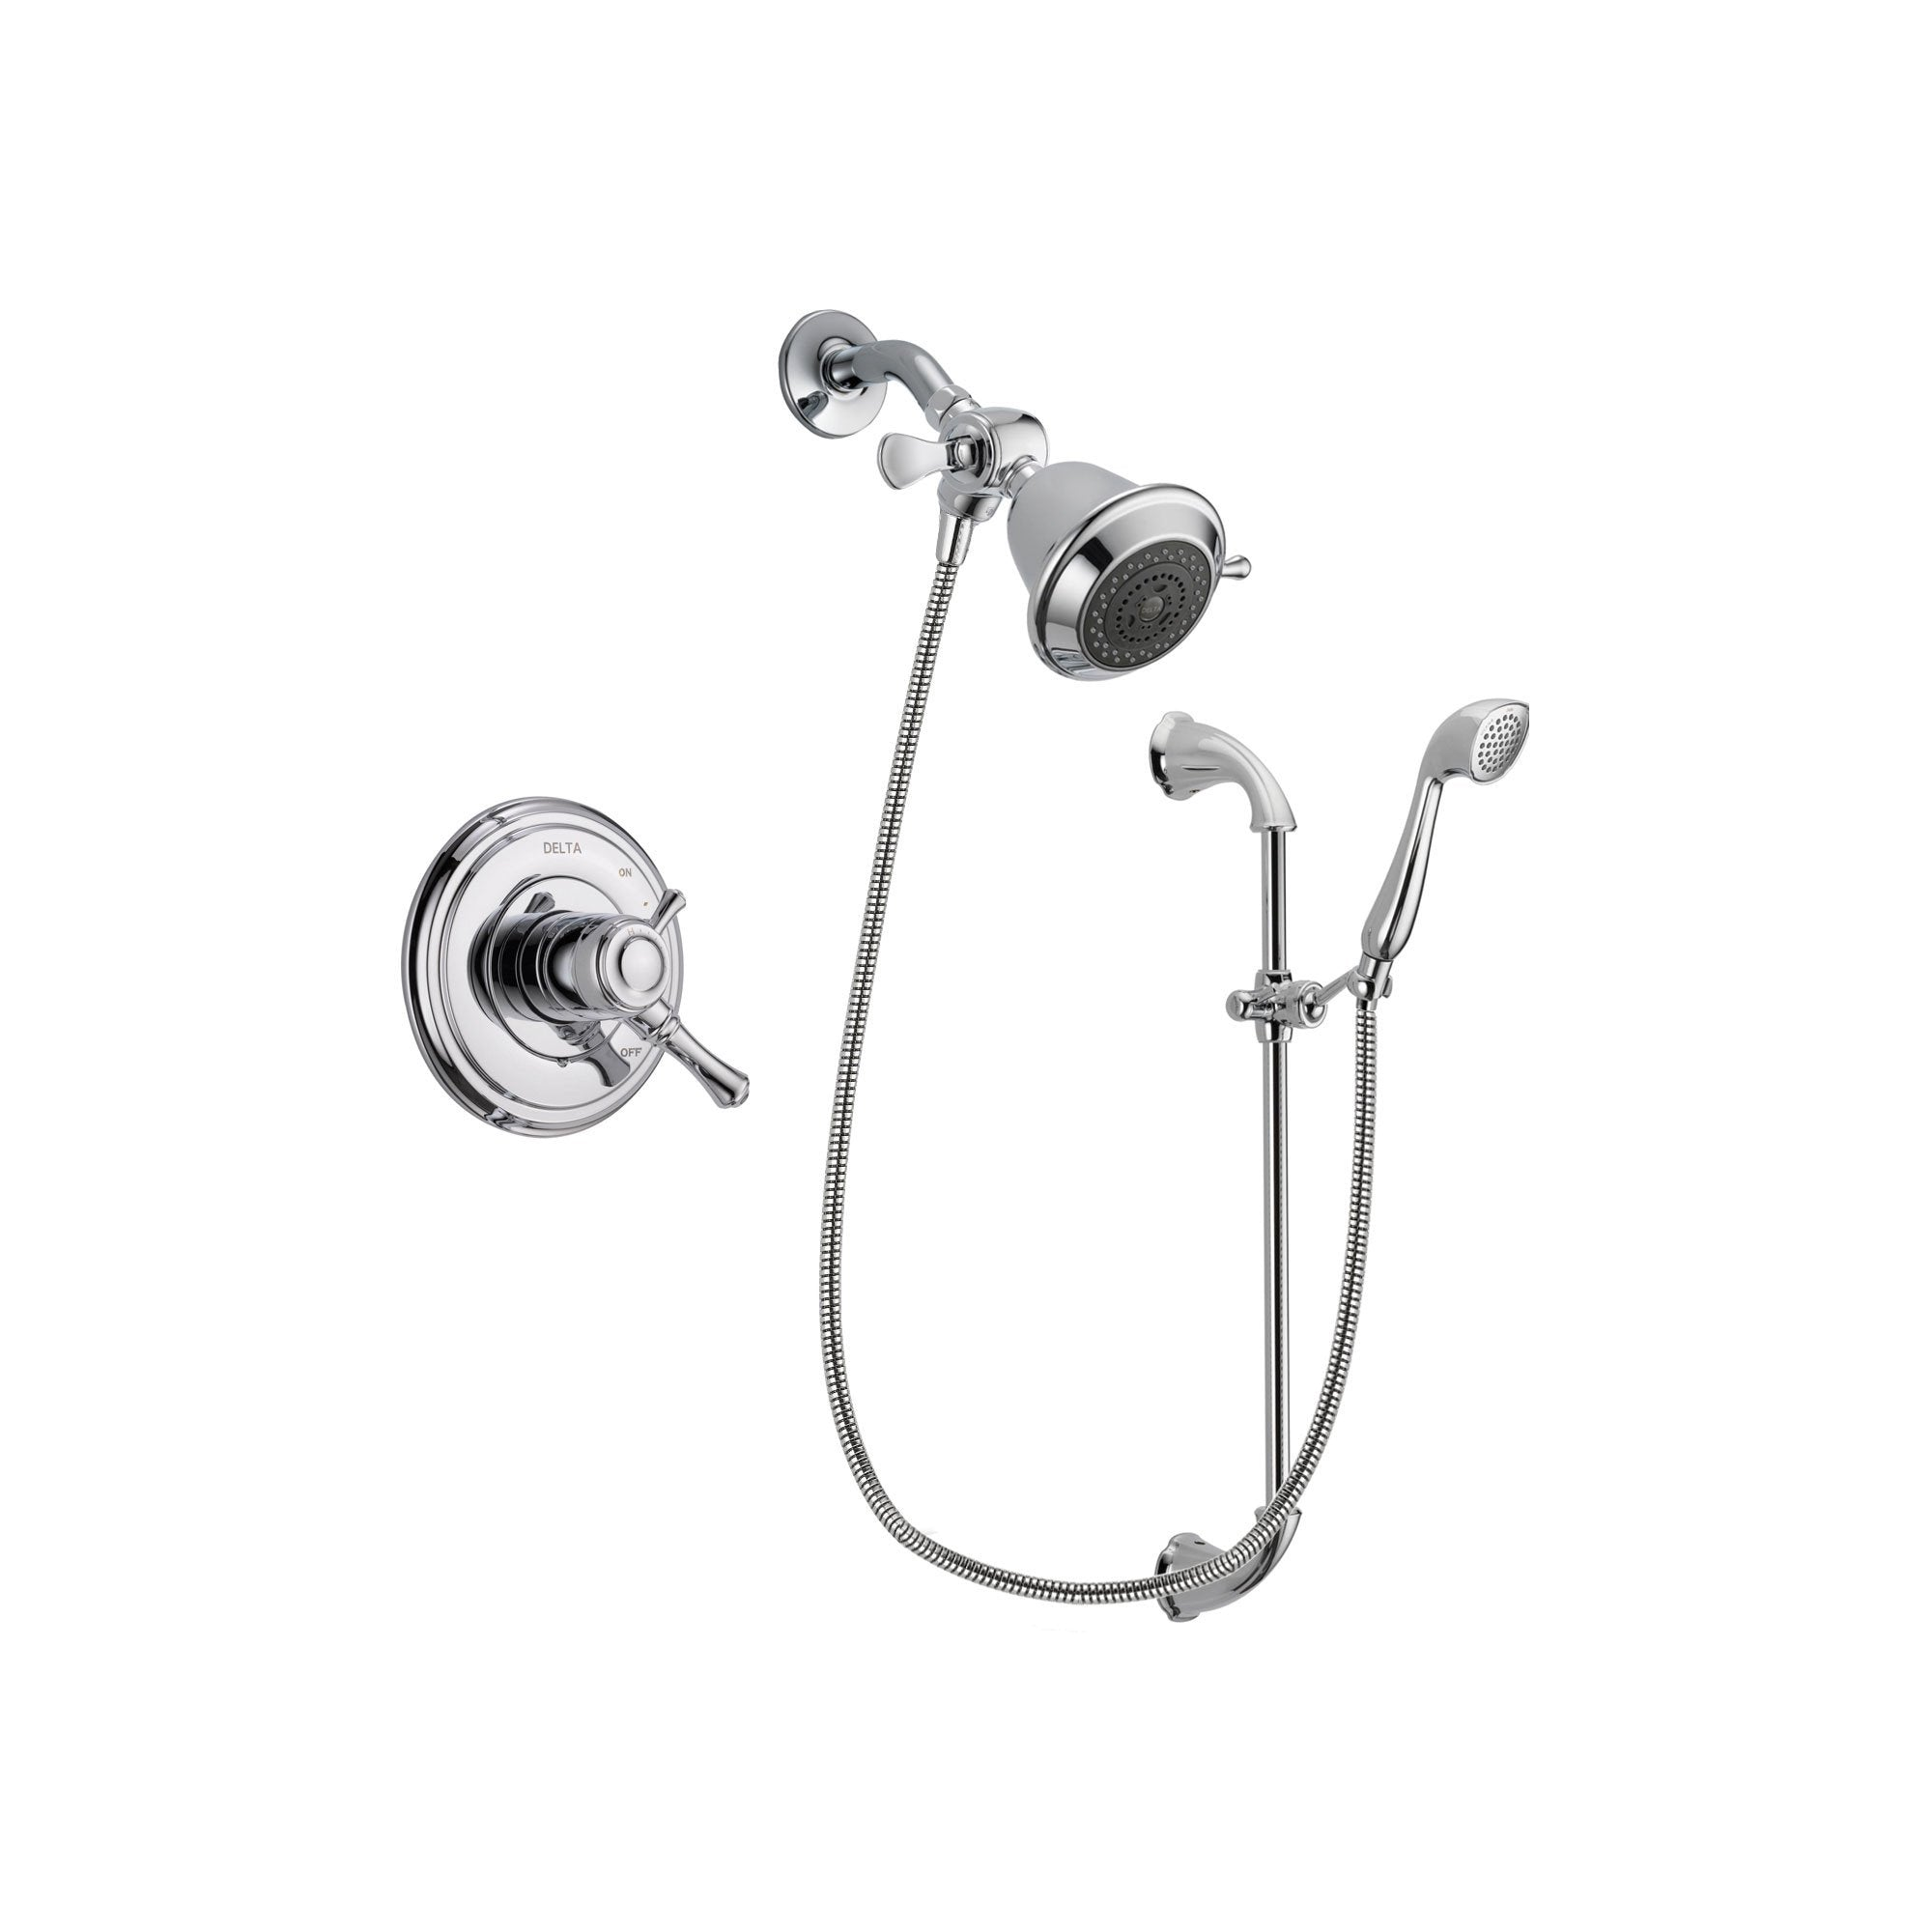 Delta Cassidy Chrome Shower Faucet System w/ Showerhead and Hand Shower DSP0866V